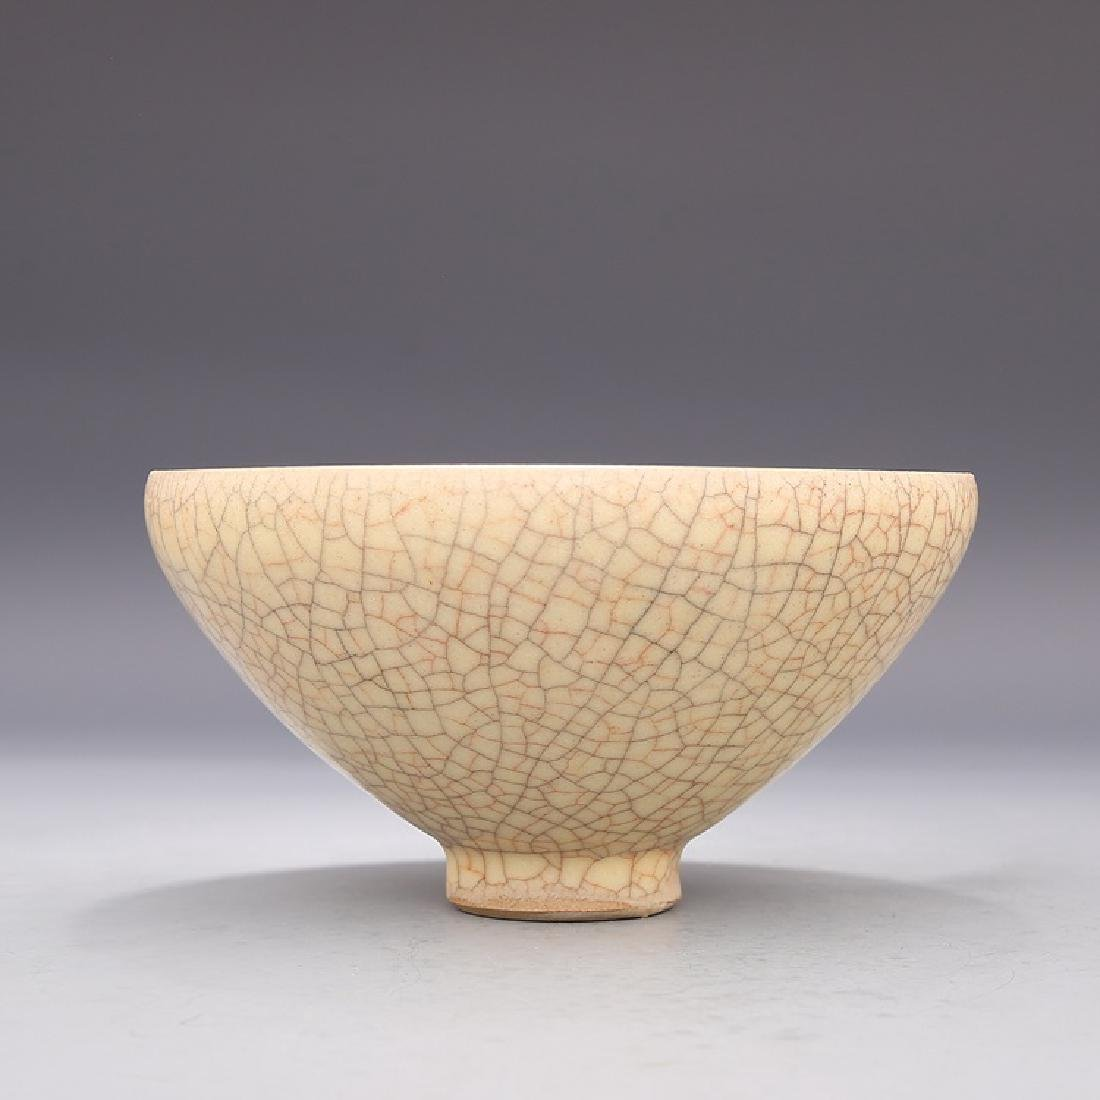 Chinese Song Dynasty Ge Ware Cracked Pattern Porcelain - 2